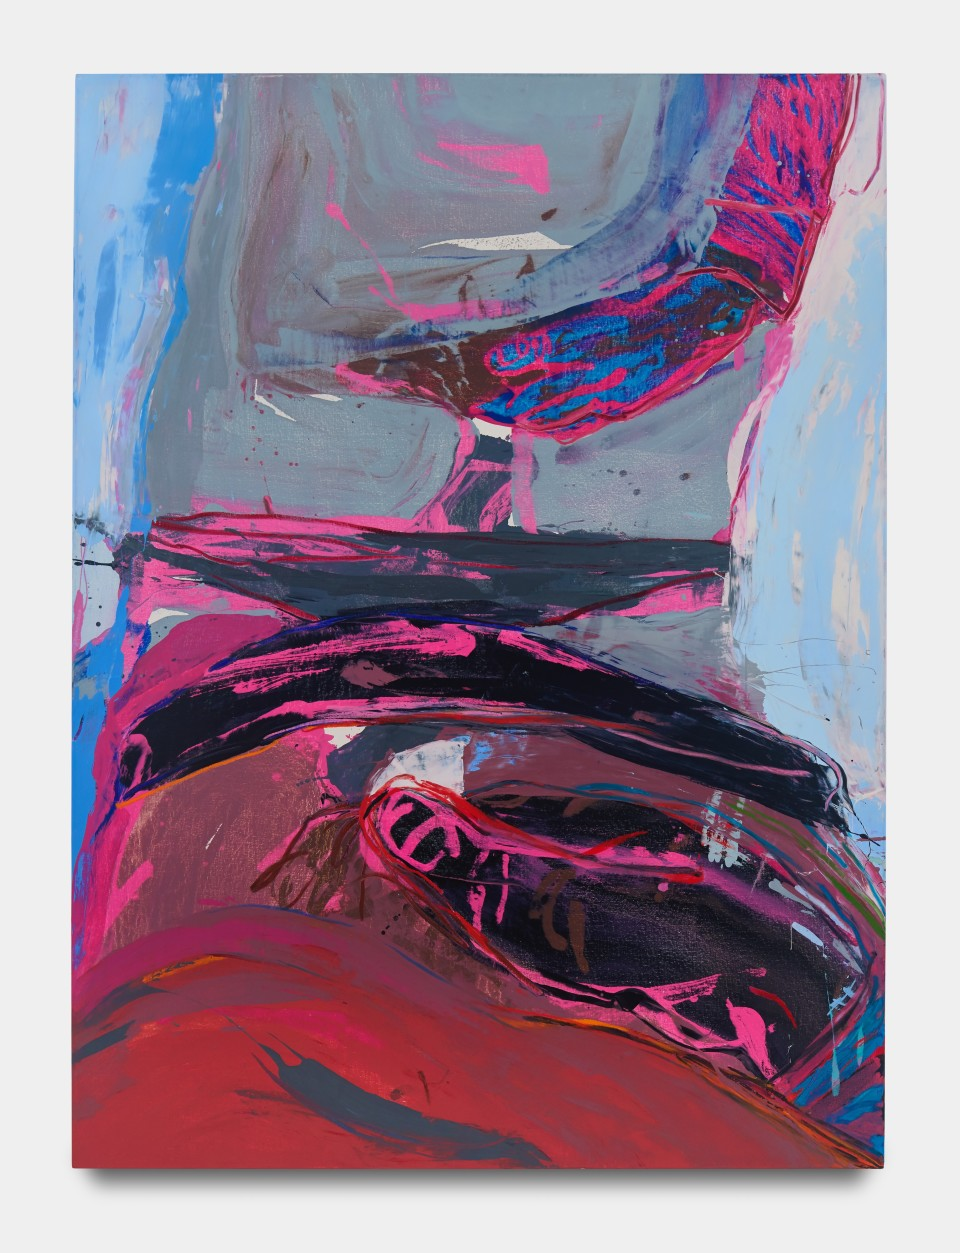 Image: Sarah Faux  Now I am a lake, 2020  signed and dated verso  oil on canvas  62 x 46 inches